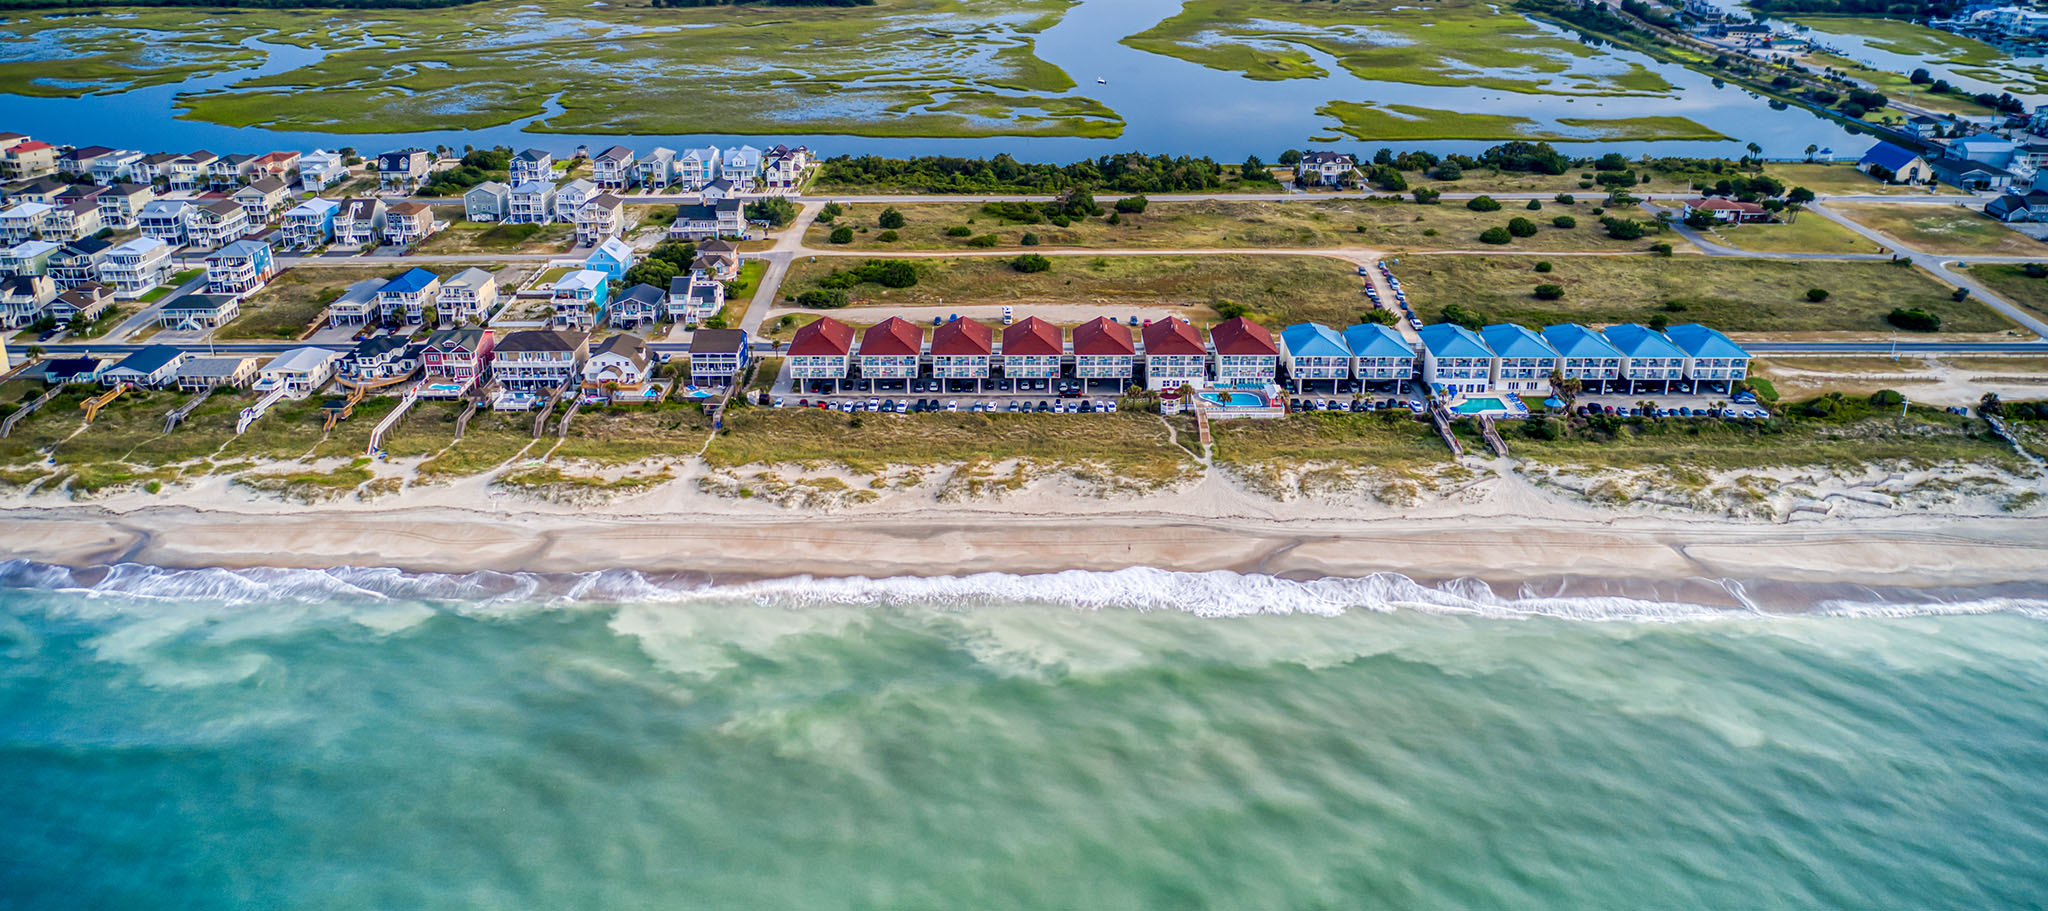 oib nc july 2019 66 top 01 - Privacy Policy